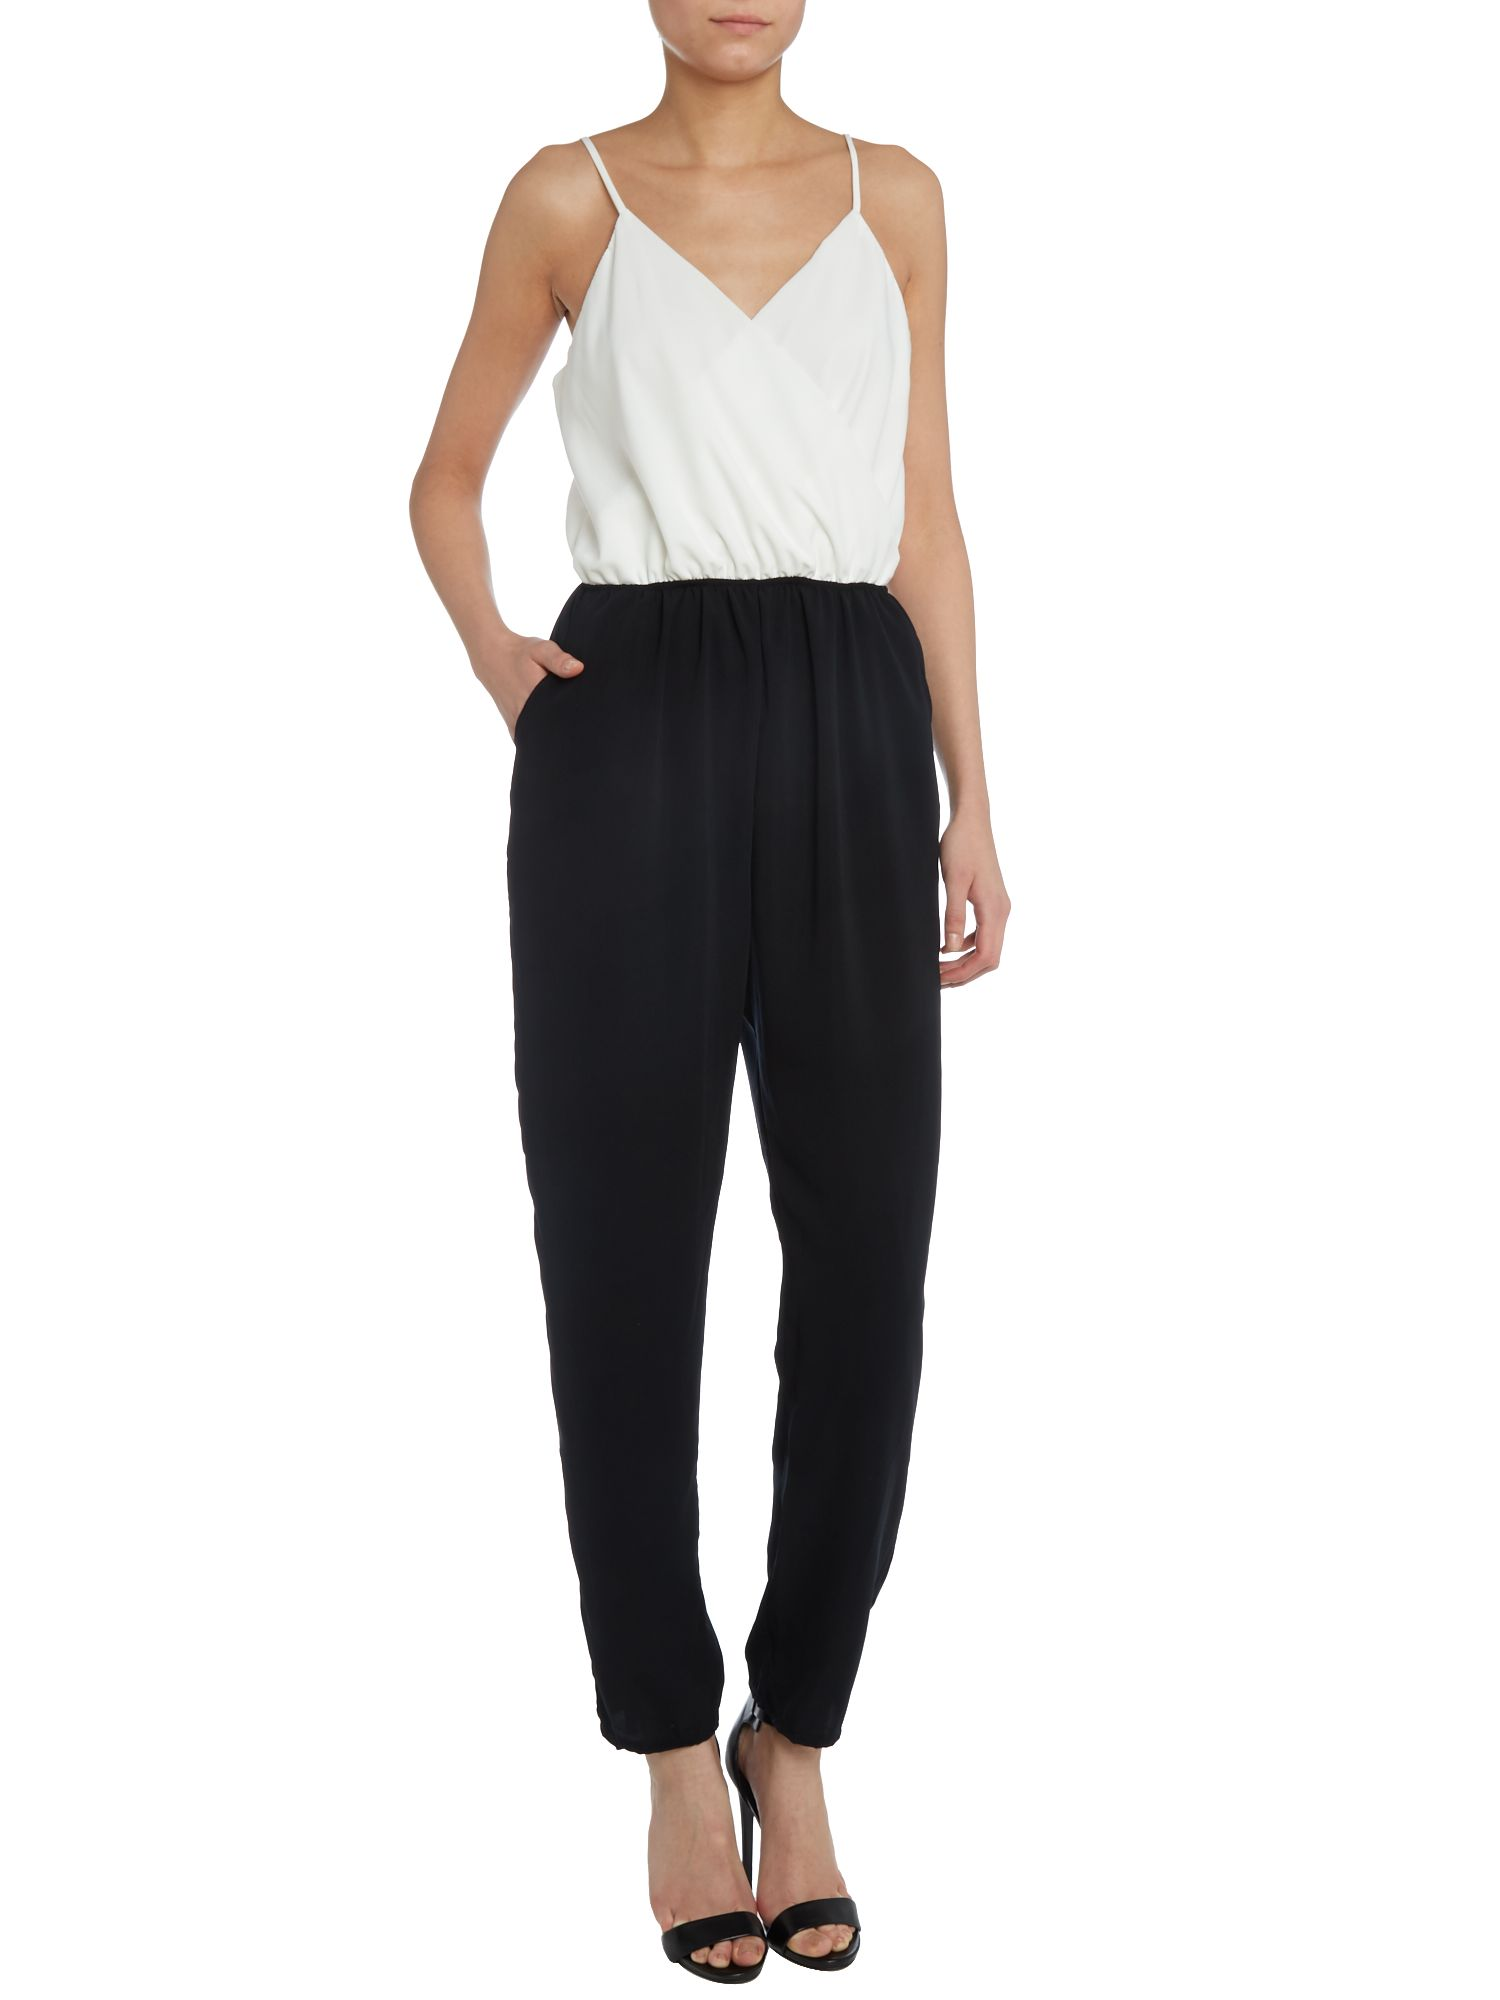 Cami top jumpsuit